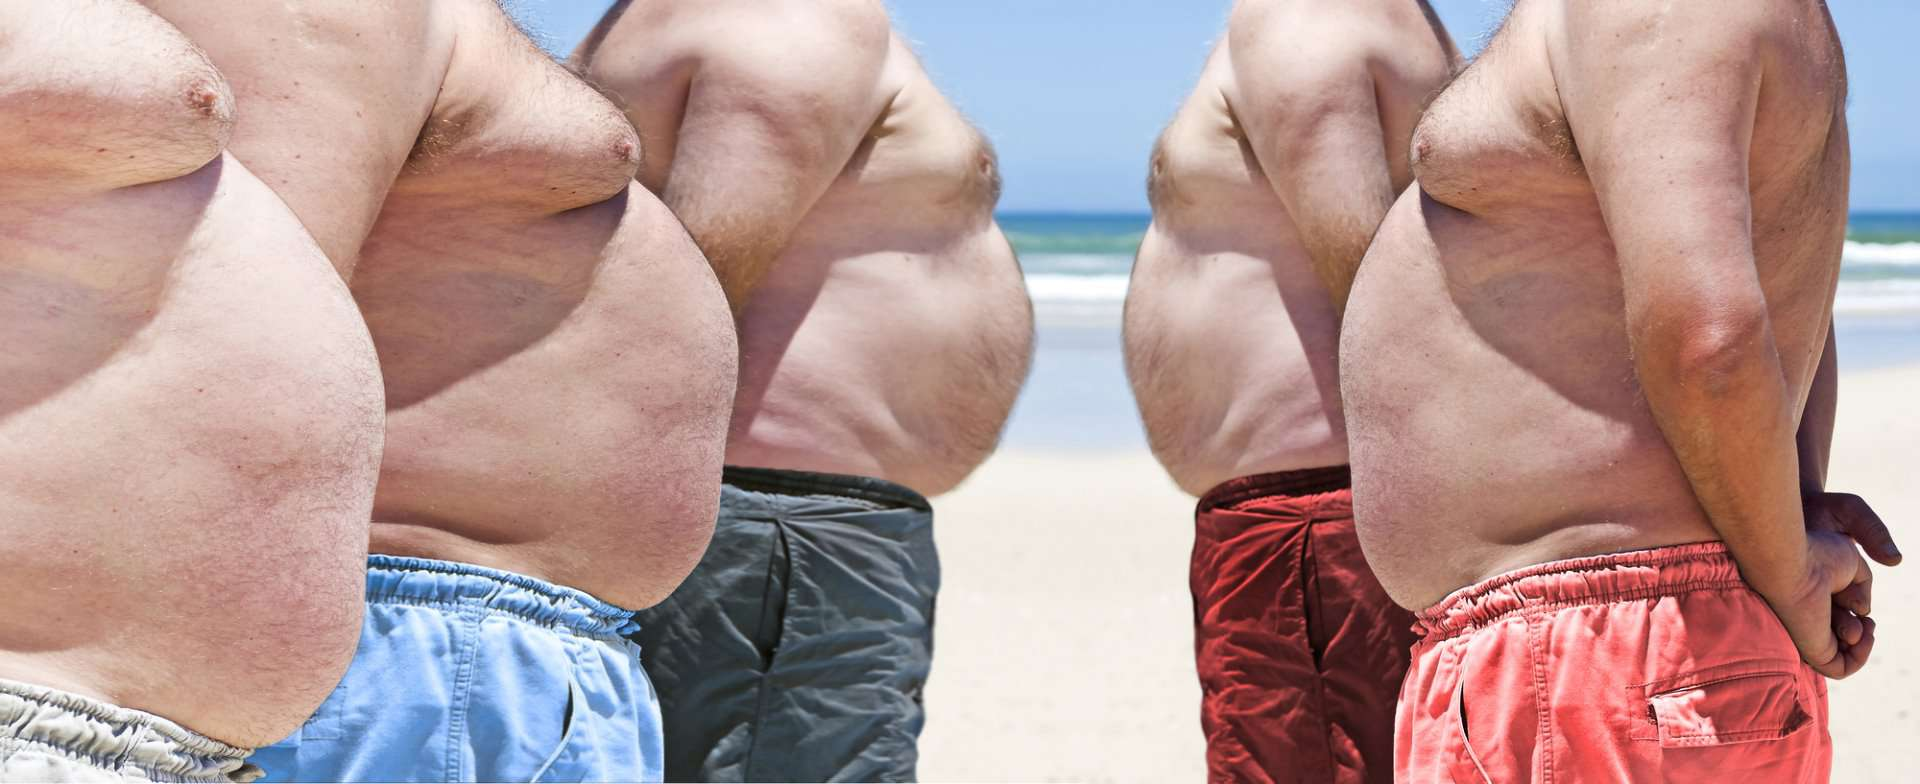 Obese men on the beach